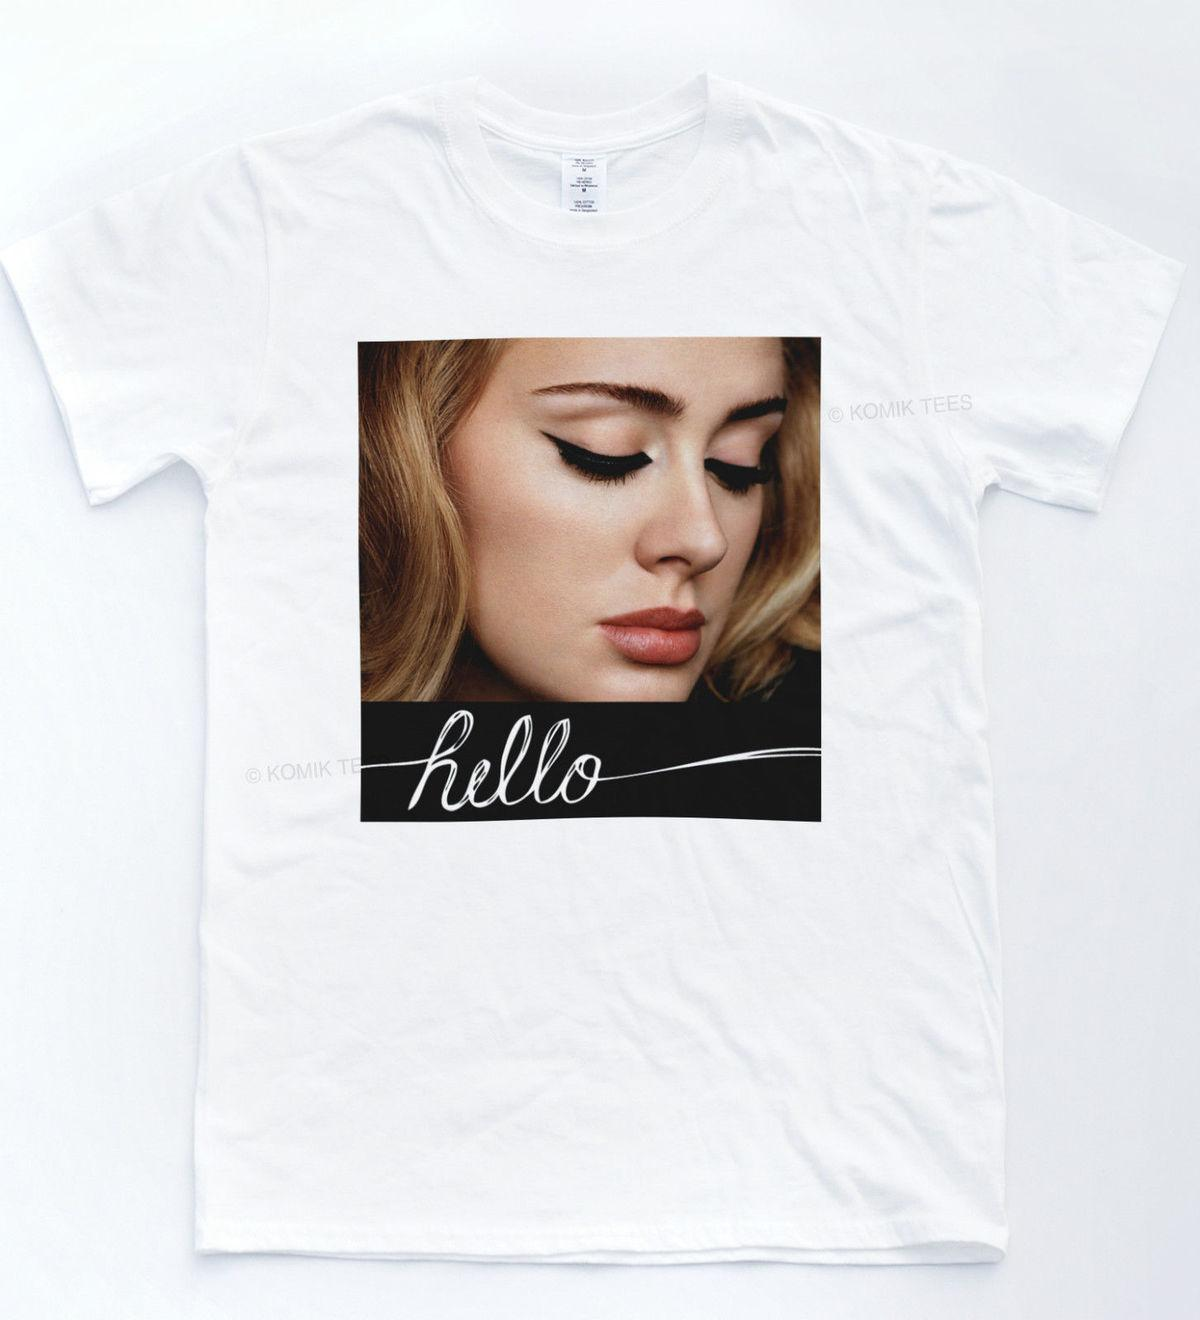 Adele 25 Album Hello Shirt